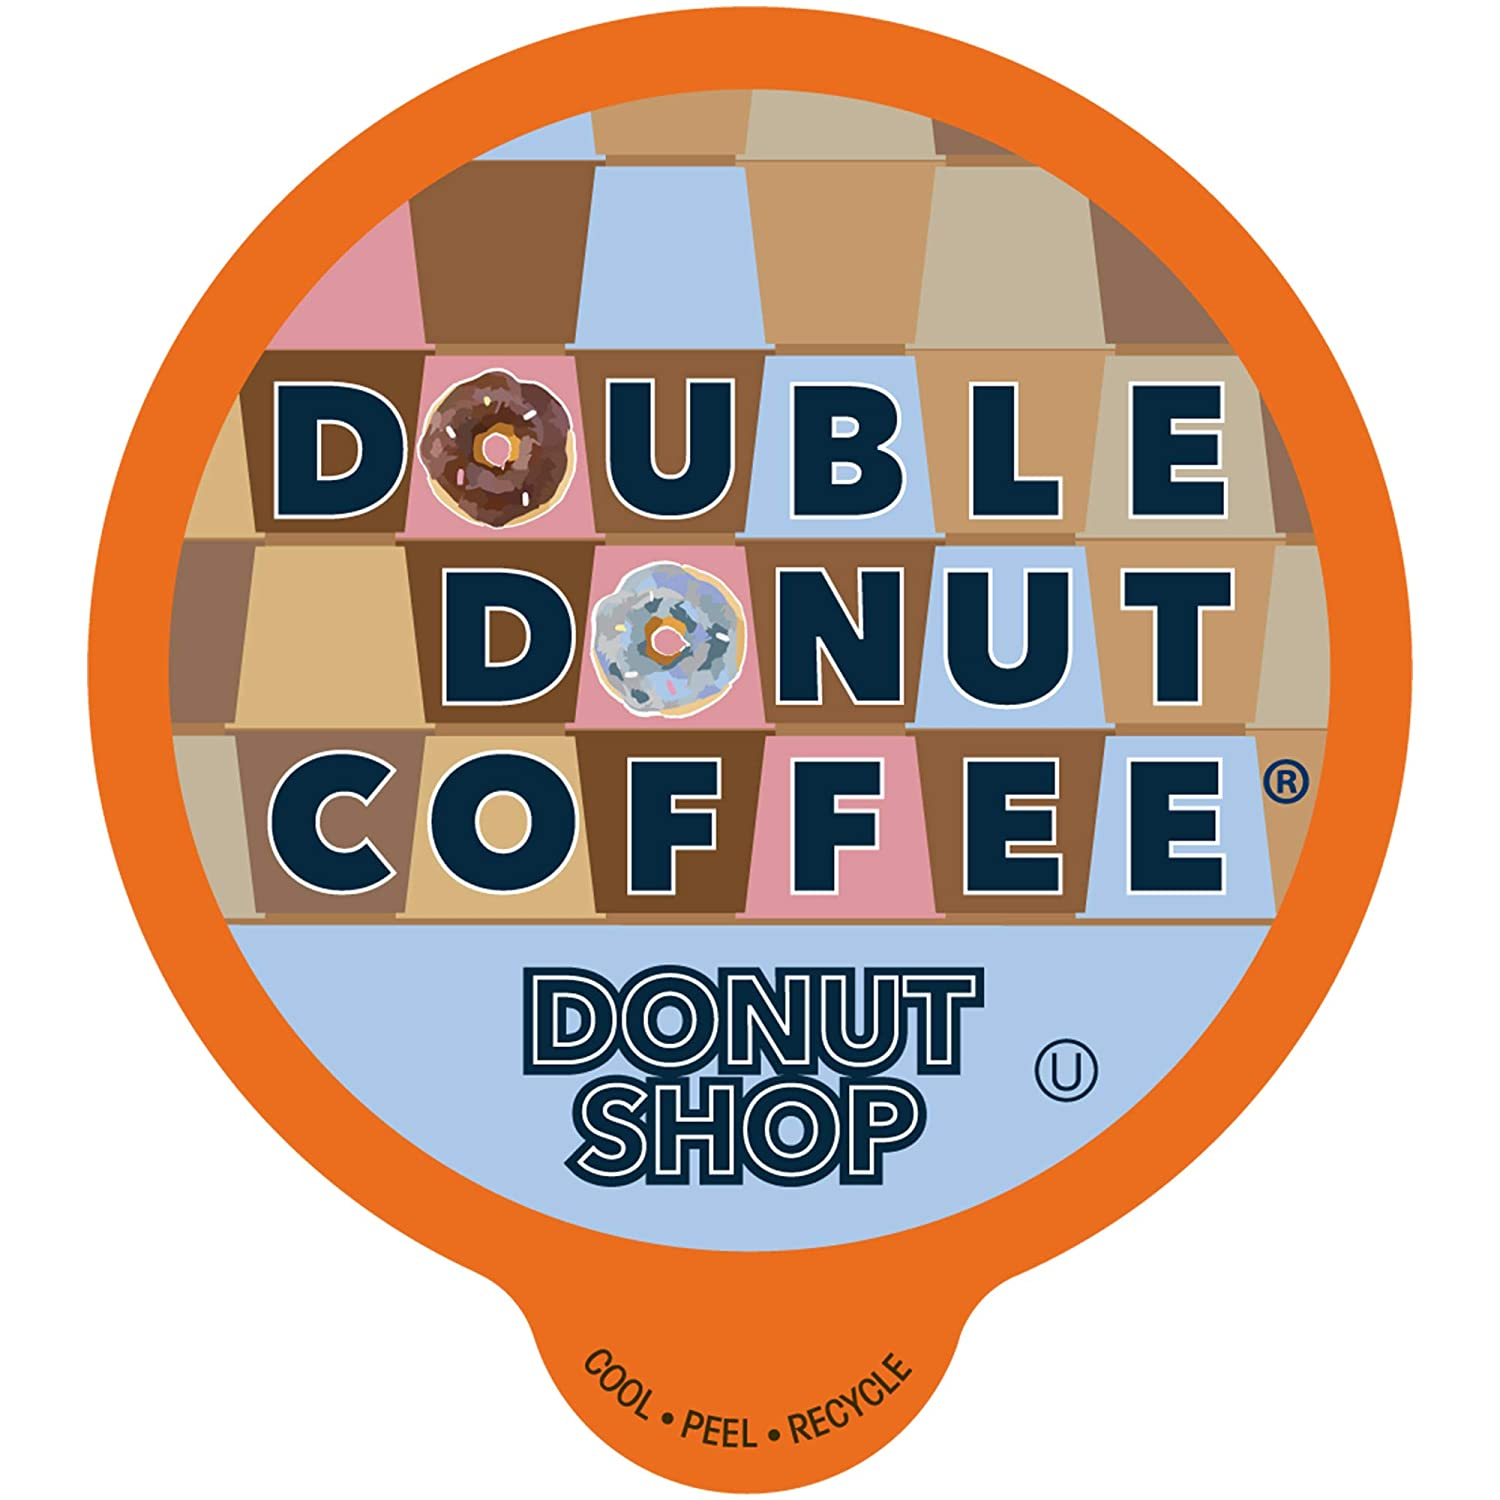 Donut Shop Coffee Pods Medium Roast Coffee, Single-Serve Pods for Keurig K Cup Brewer Machines, 24 Pack